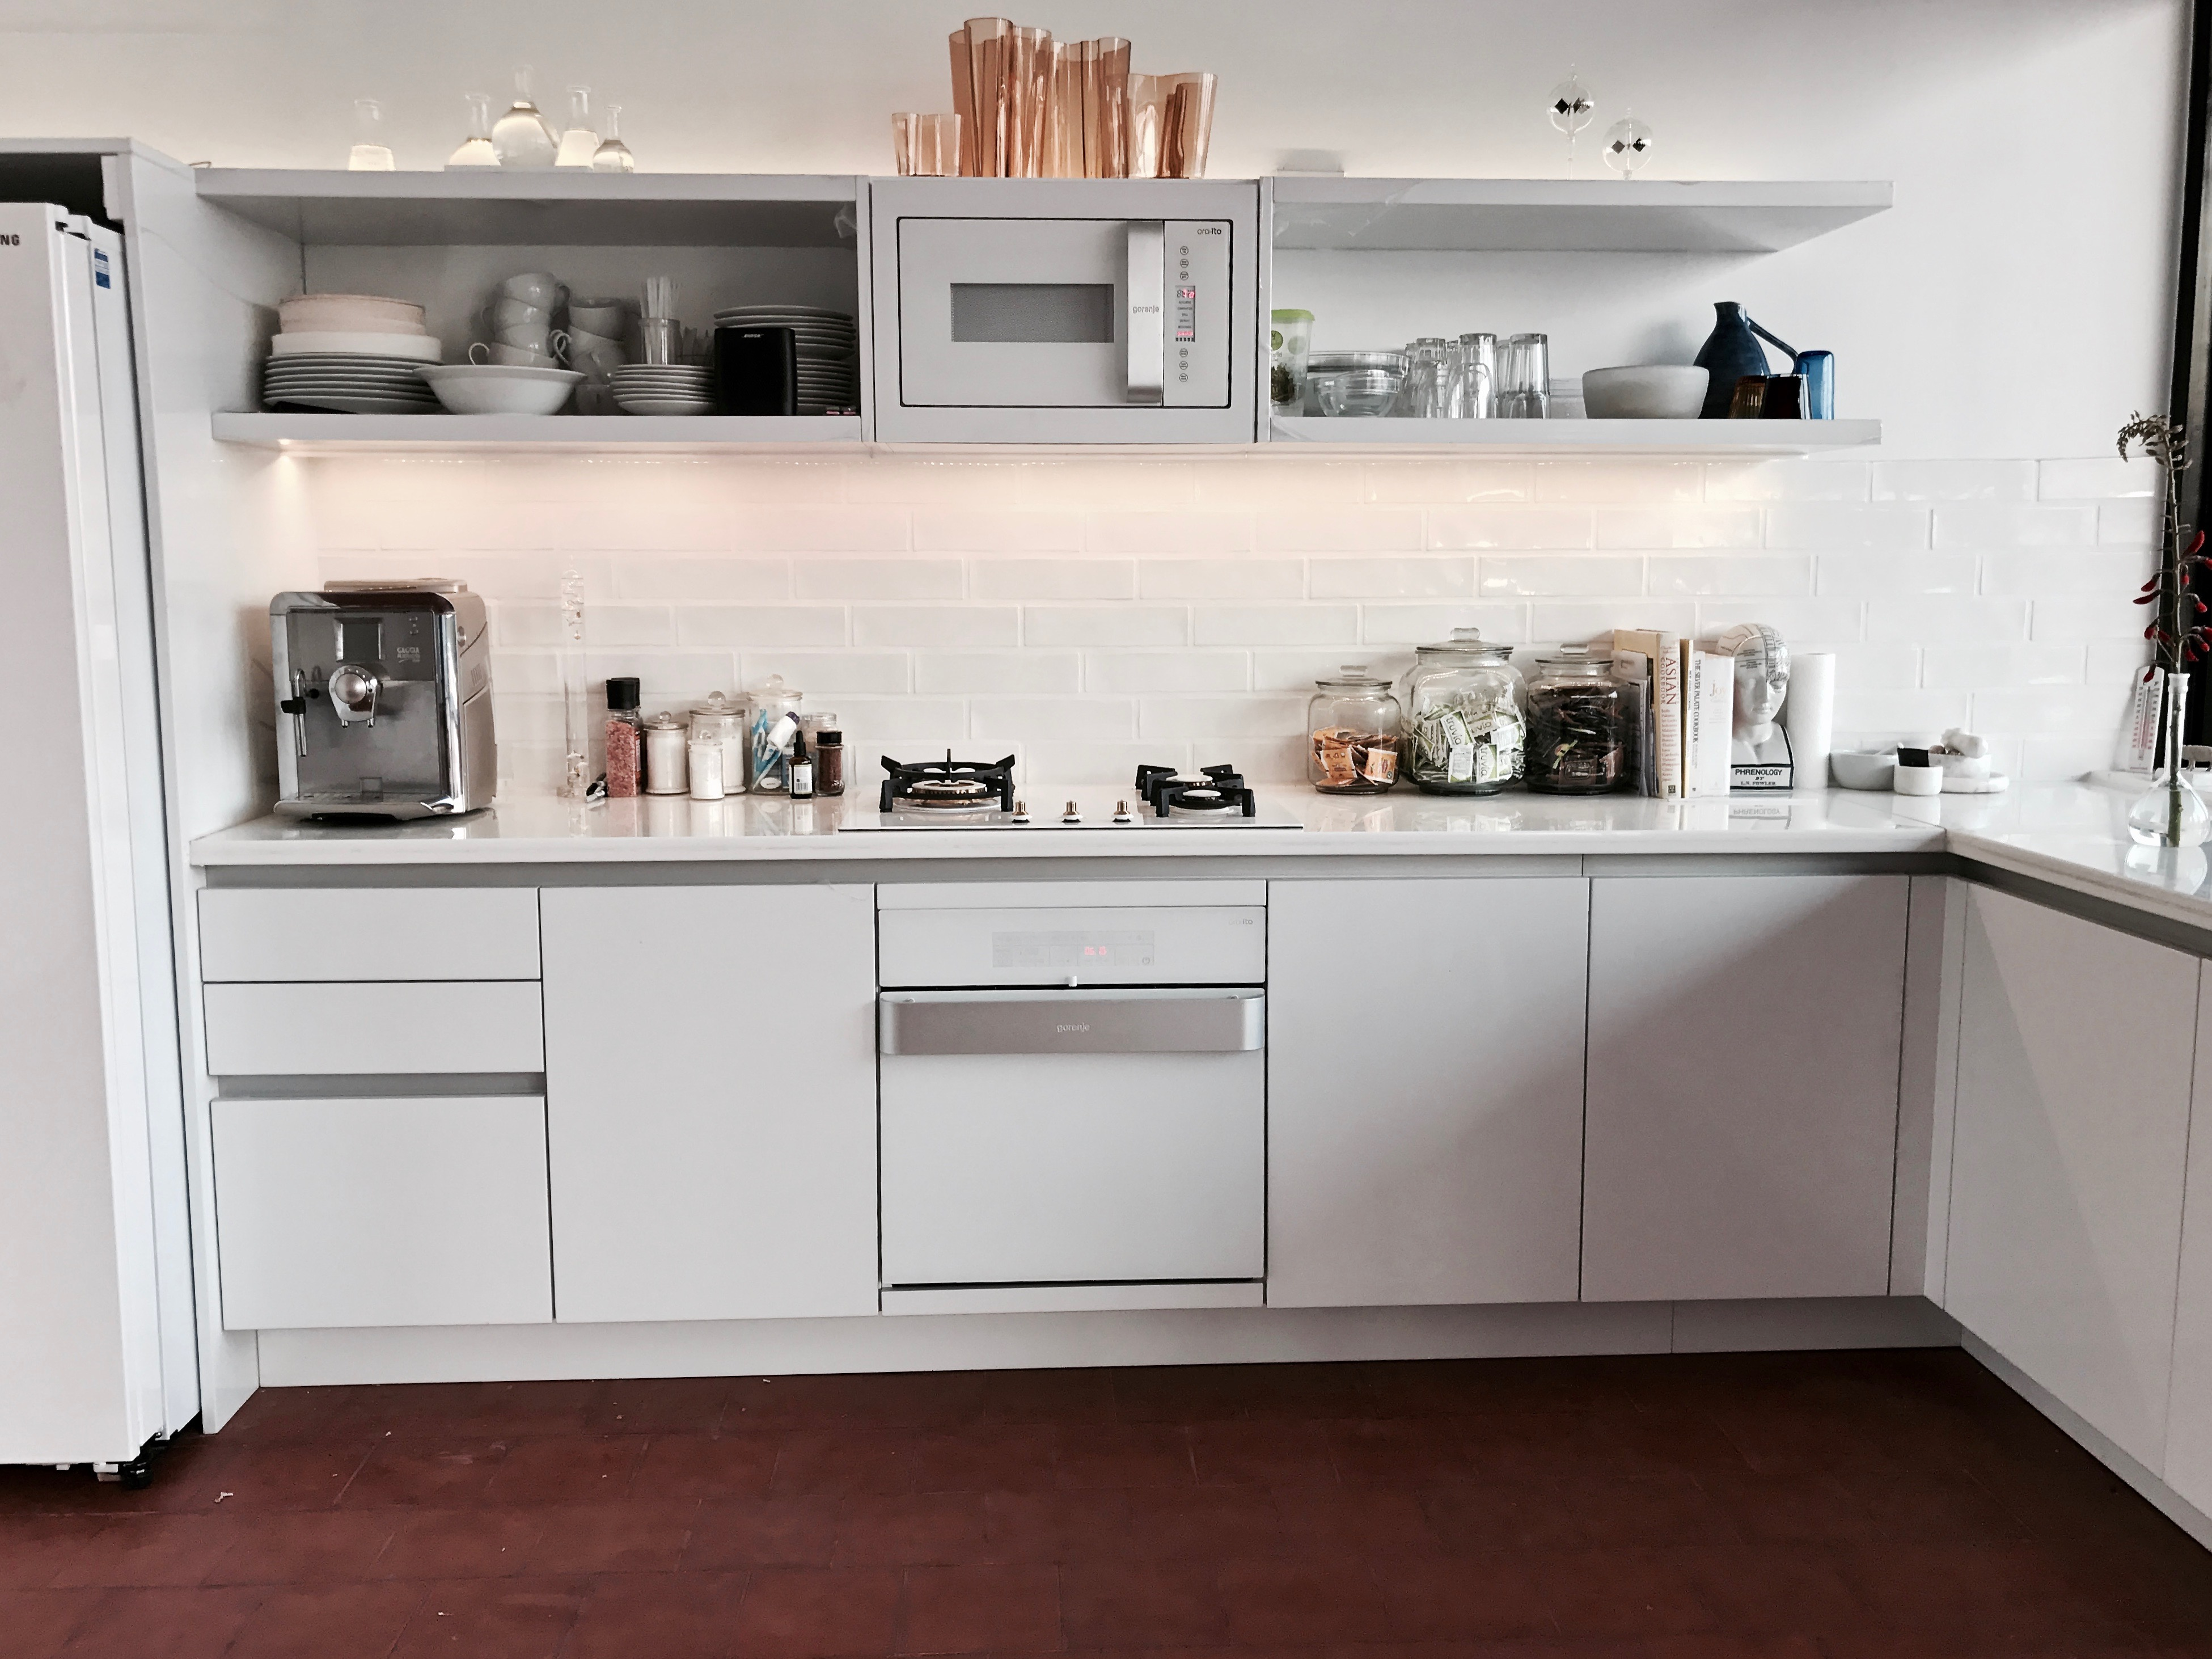 Index Living Mall Kitchens in Chiang Mai - Page 2 - Chiang Mai Forum ...